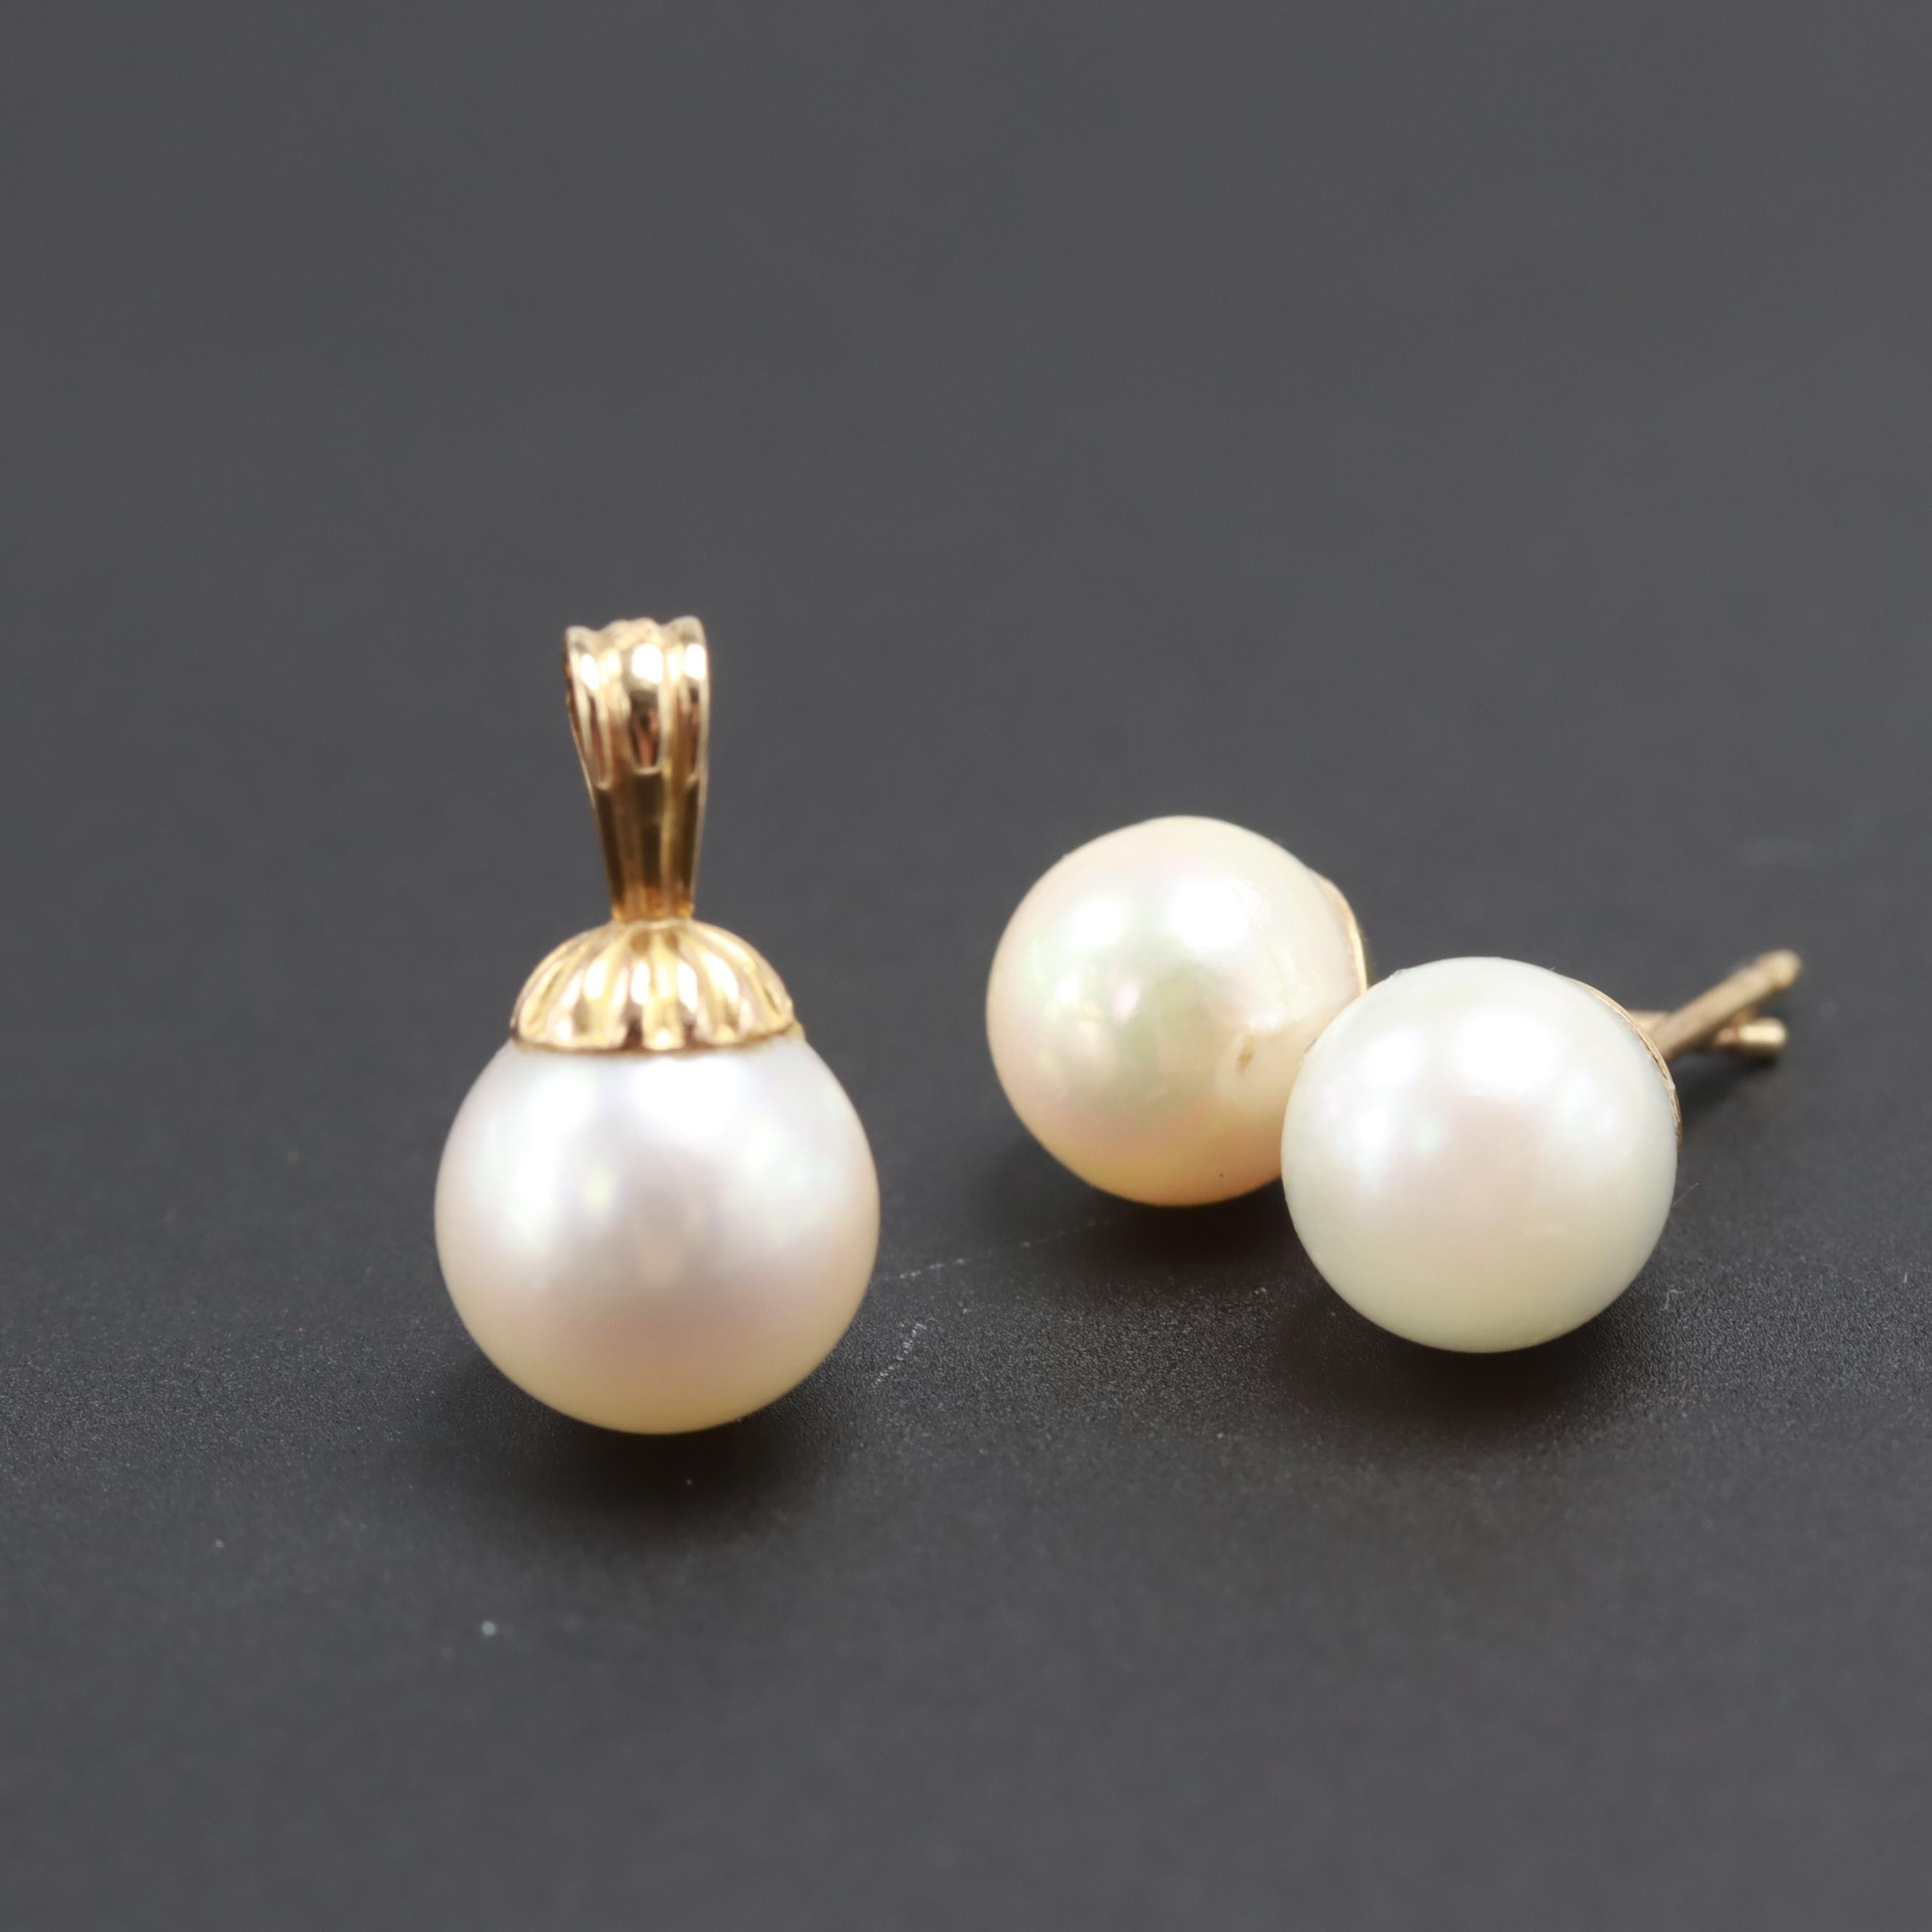 14K Yellow Gold Cultured Pearl Earrings and Pendant